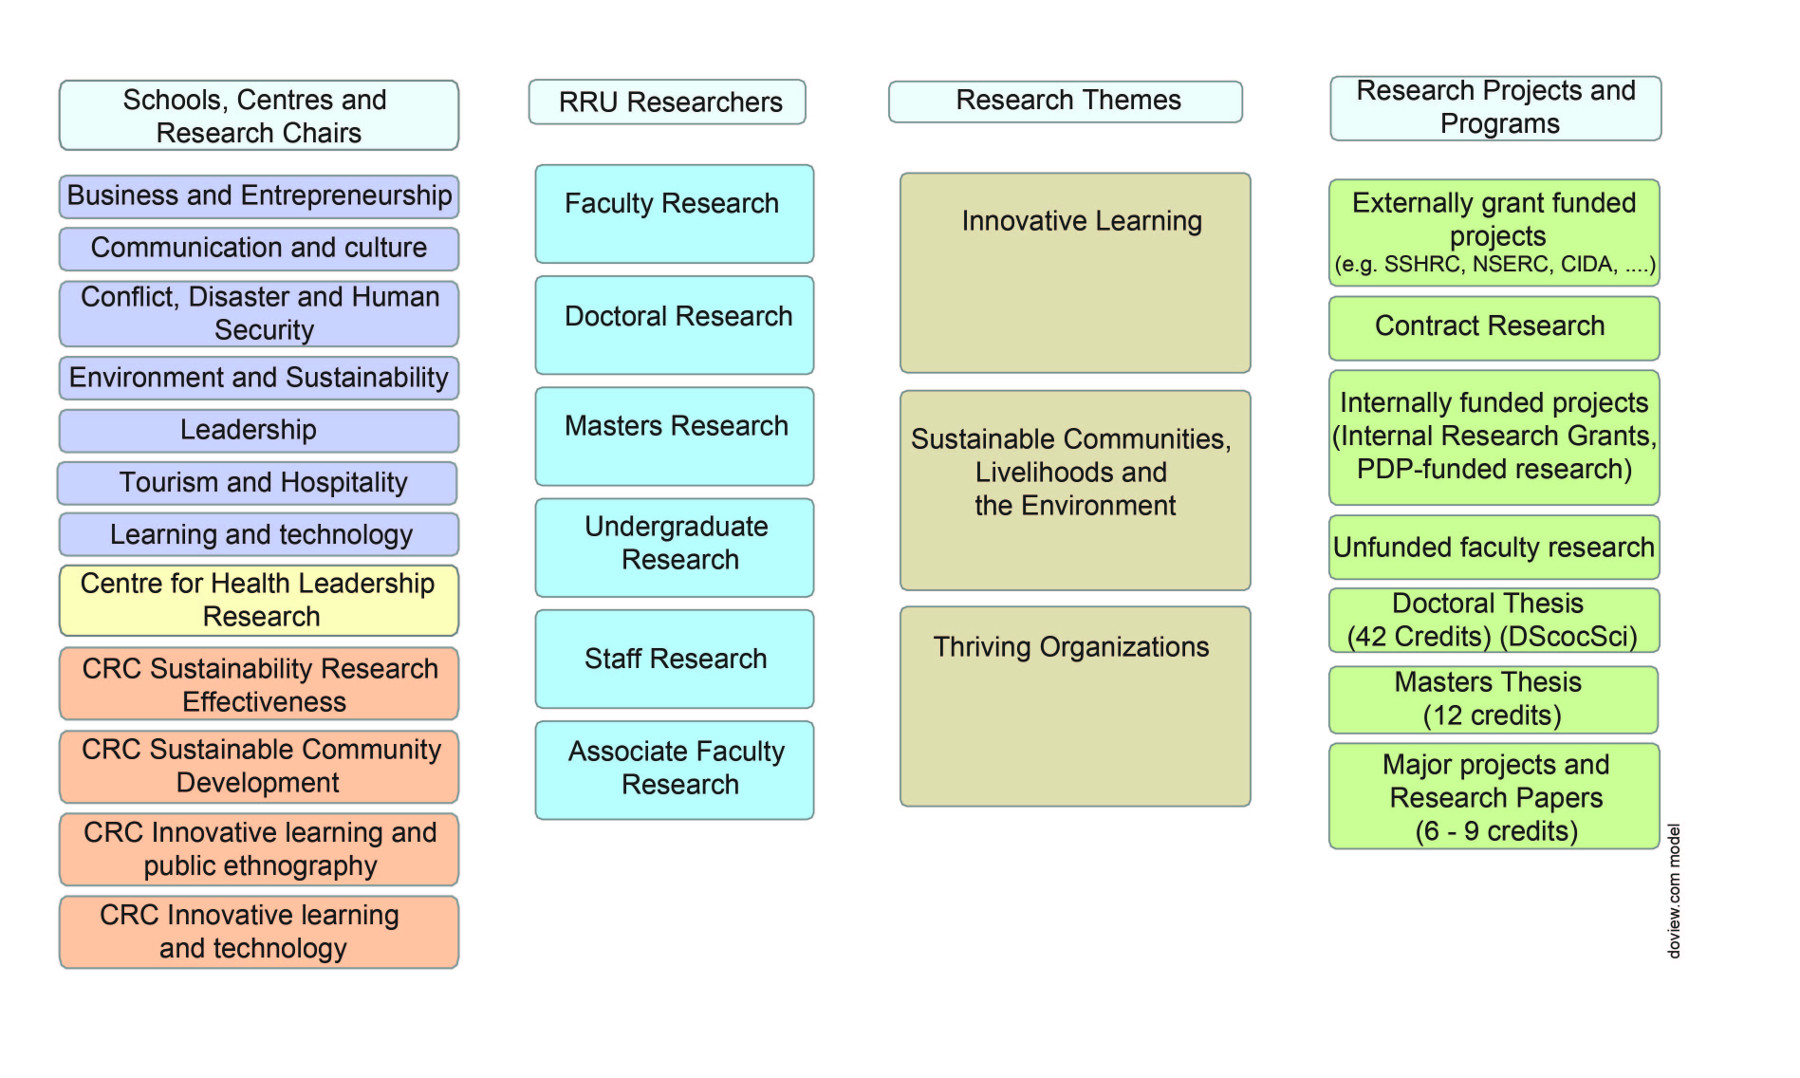 Figure 1. The RRU Research Environment.